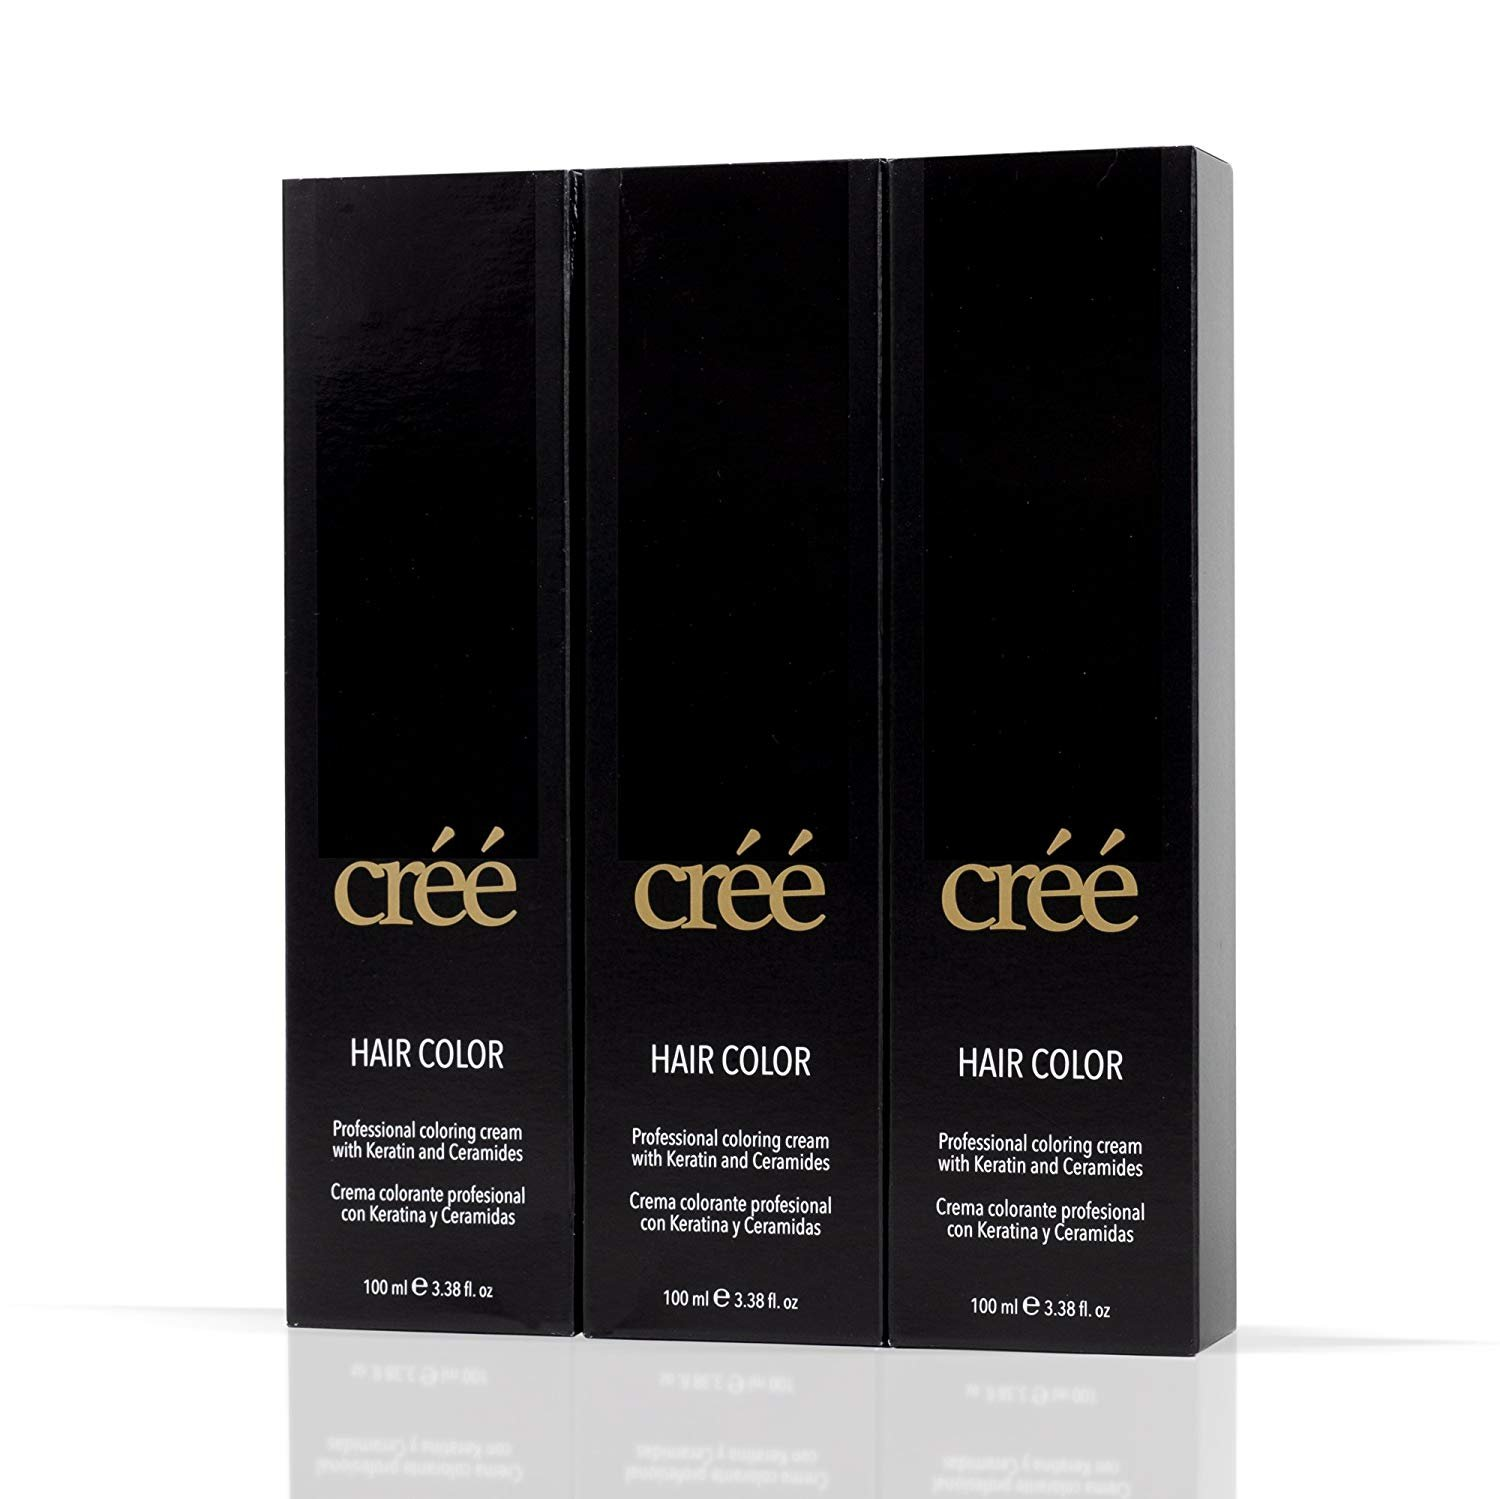 Cree Hair Color w/Keratin and Ceramides - 3.38 Fl oz - 3 Pack Professional Coloring Cream (1-Black)